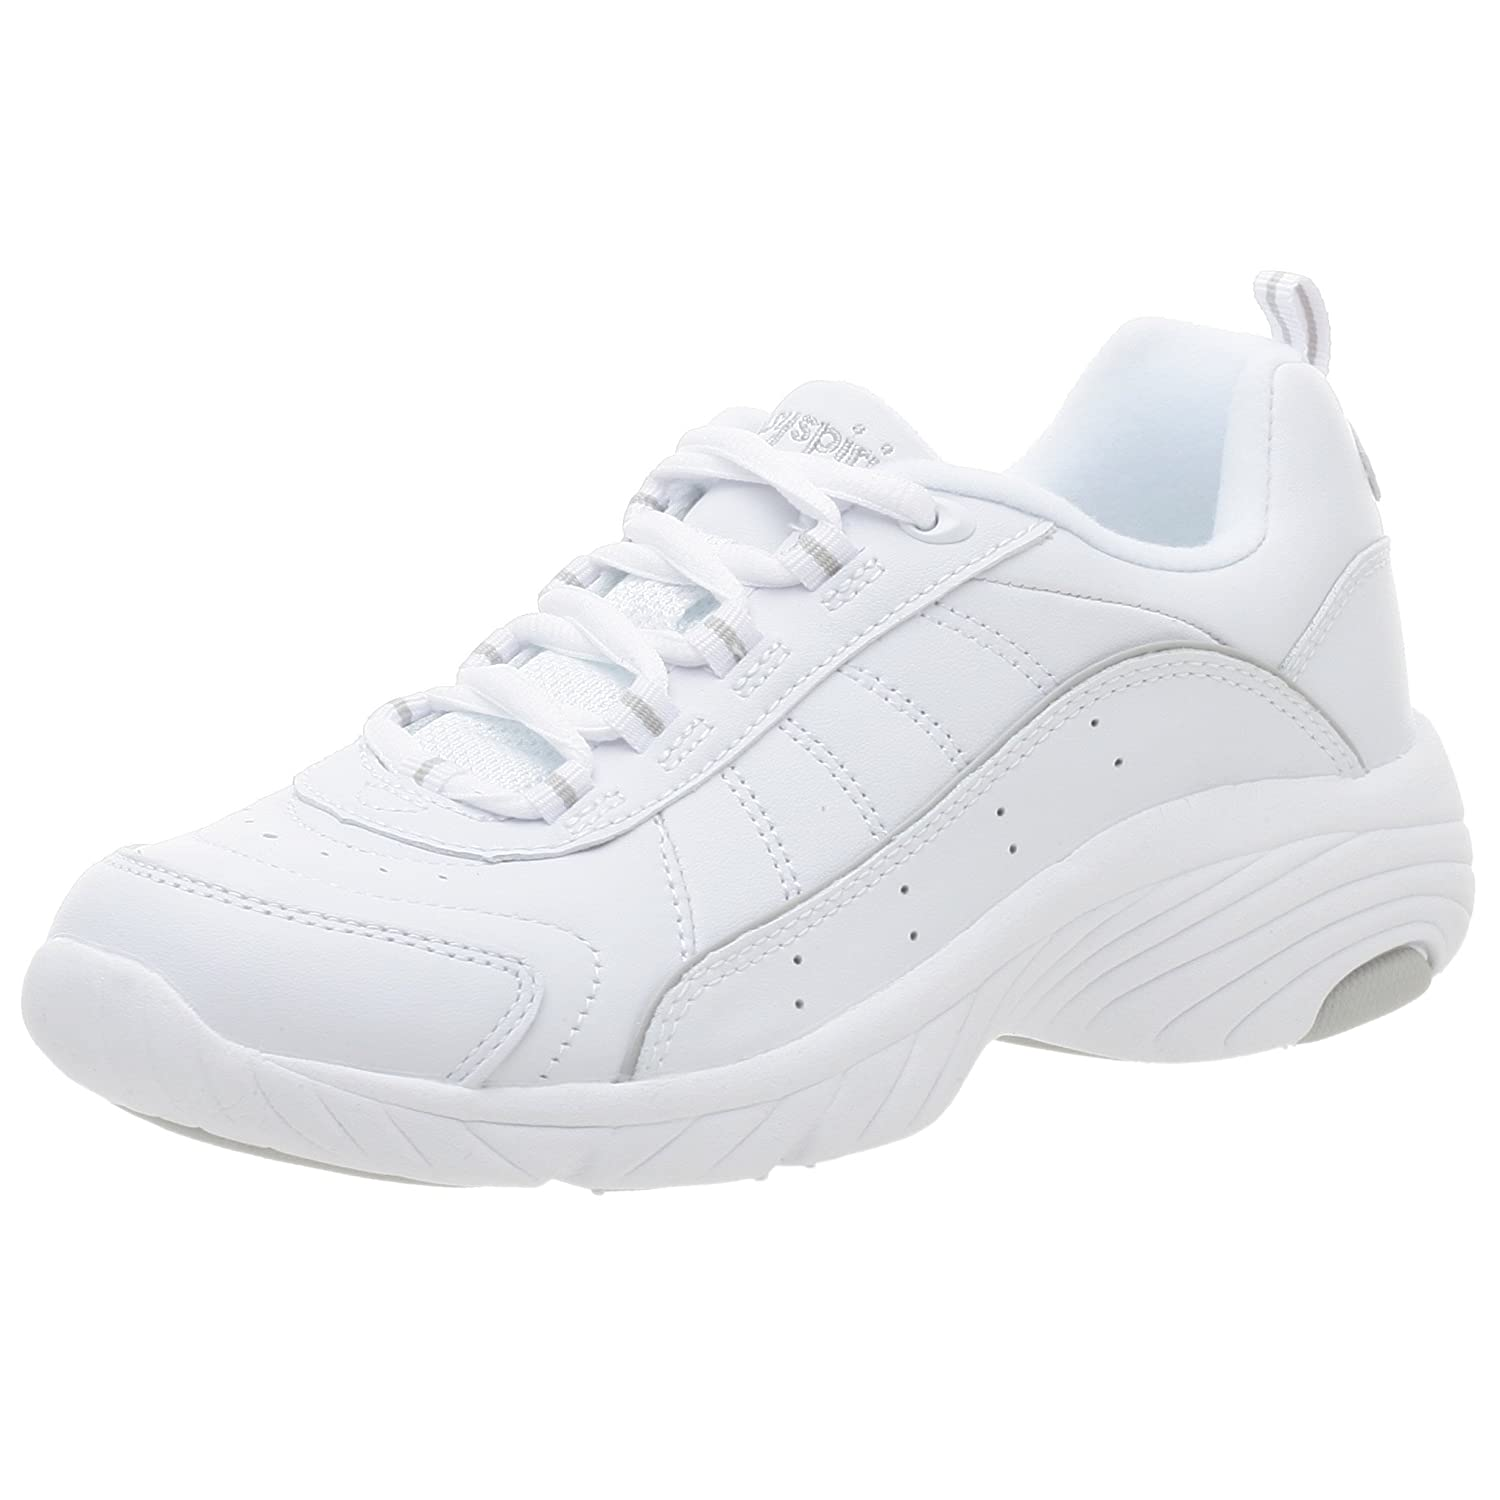 Easy Spirit Women's Punter Athletic Shoe B000Q918LU 8.5 N|White/Light Grey